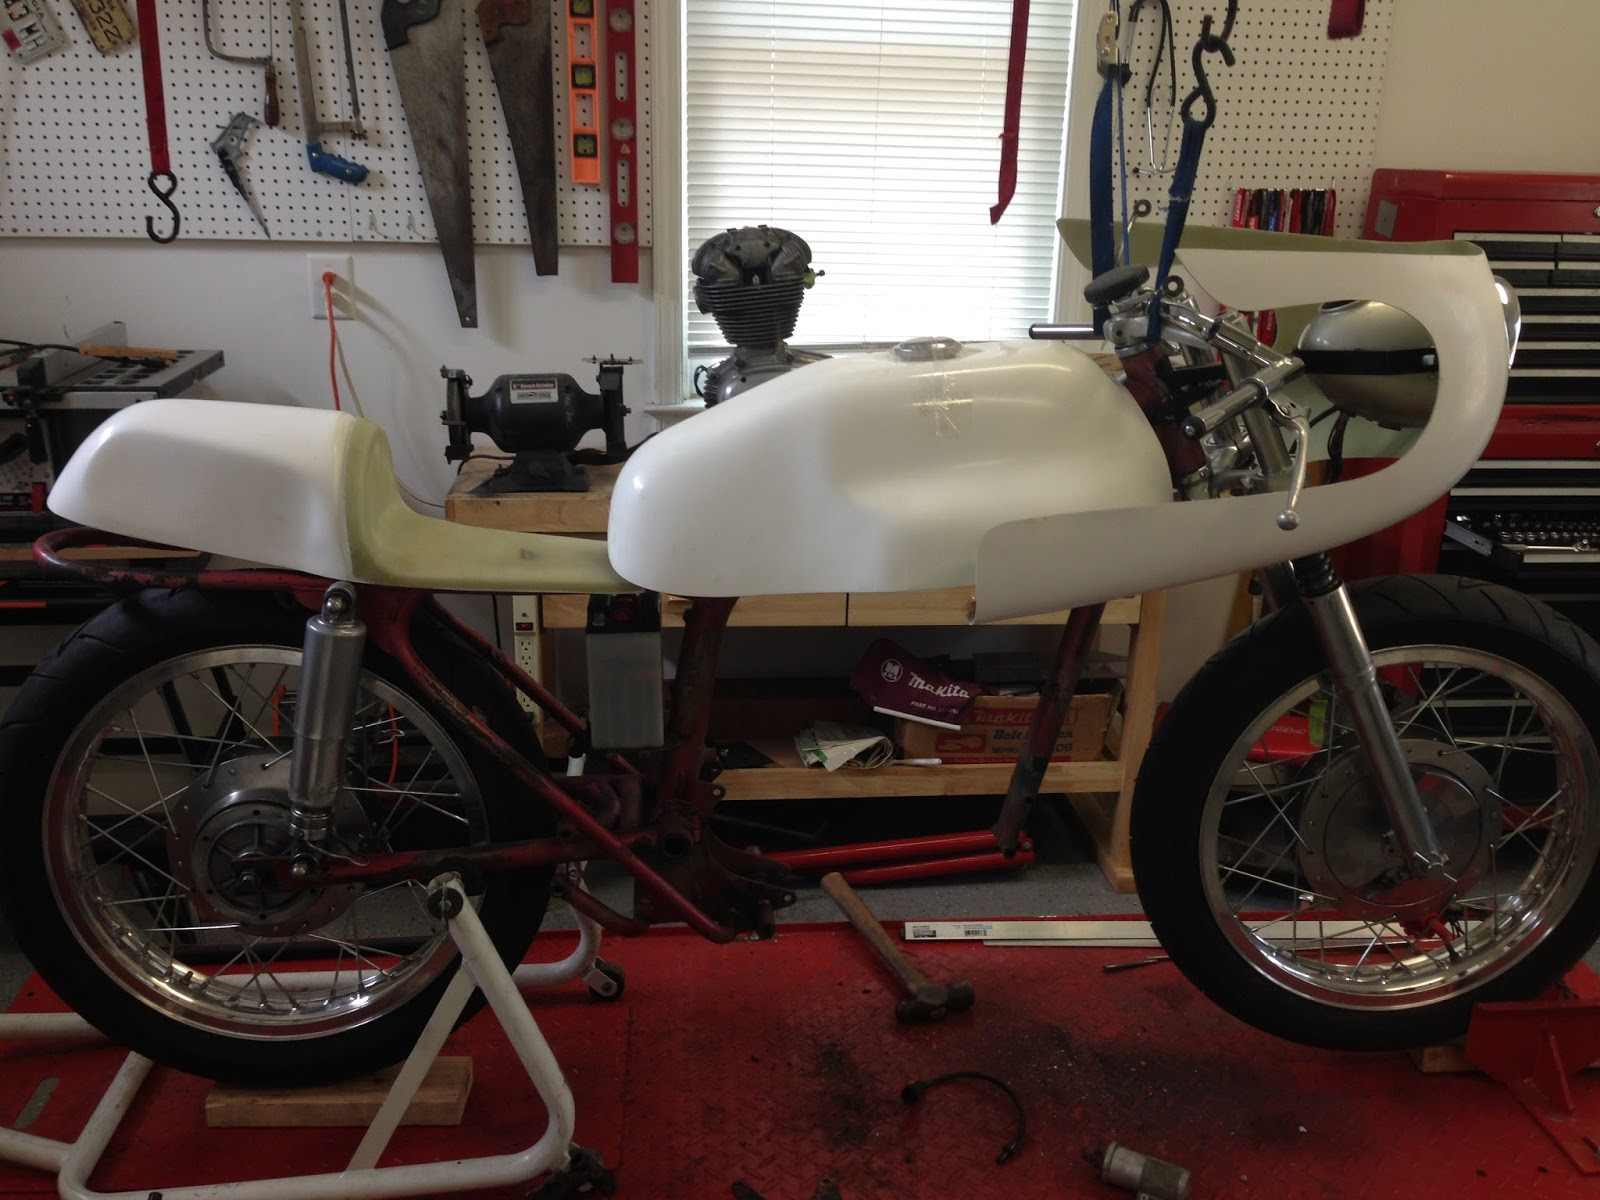 1966 Ducati Monza 250 Supersport Conversion Wiring Diagram Once I Had All The Brackets Figured Out Sent Body Work Off To Get Painted Did Some Research On Original Paint Colors For Imola Bikes